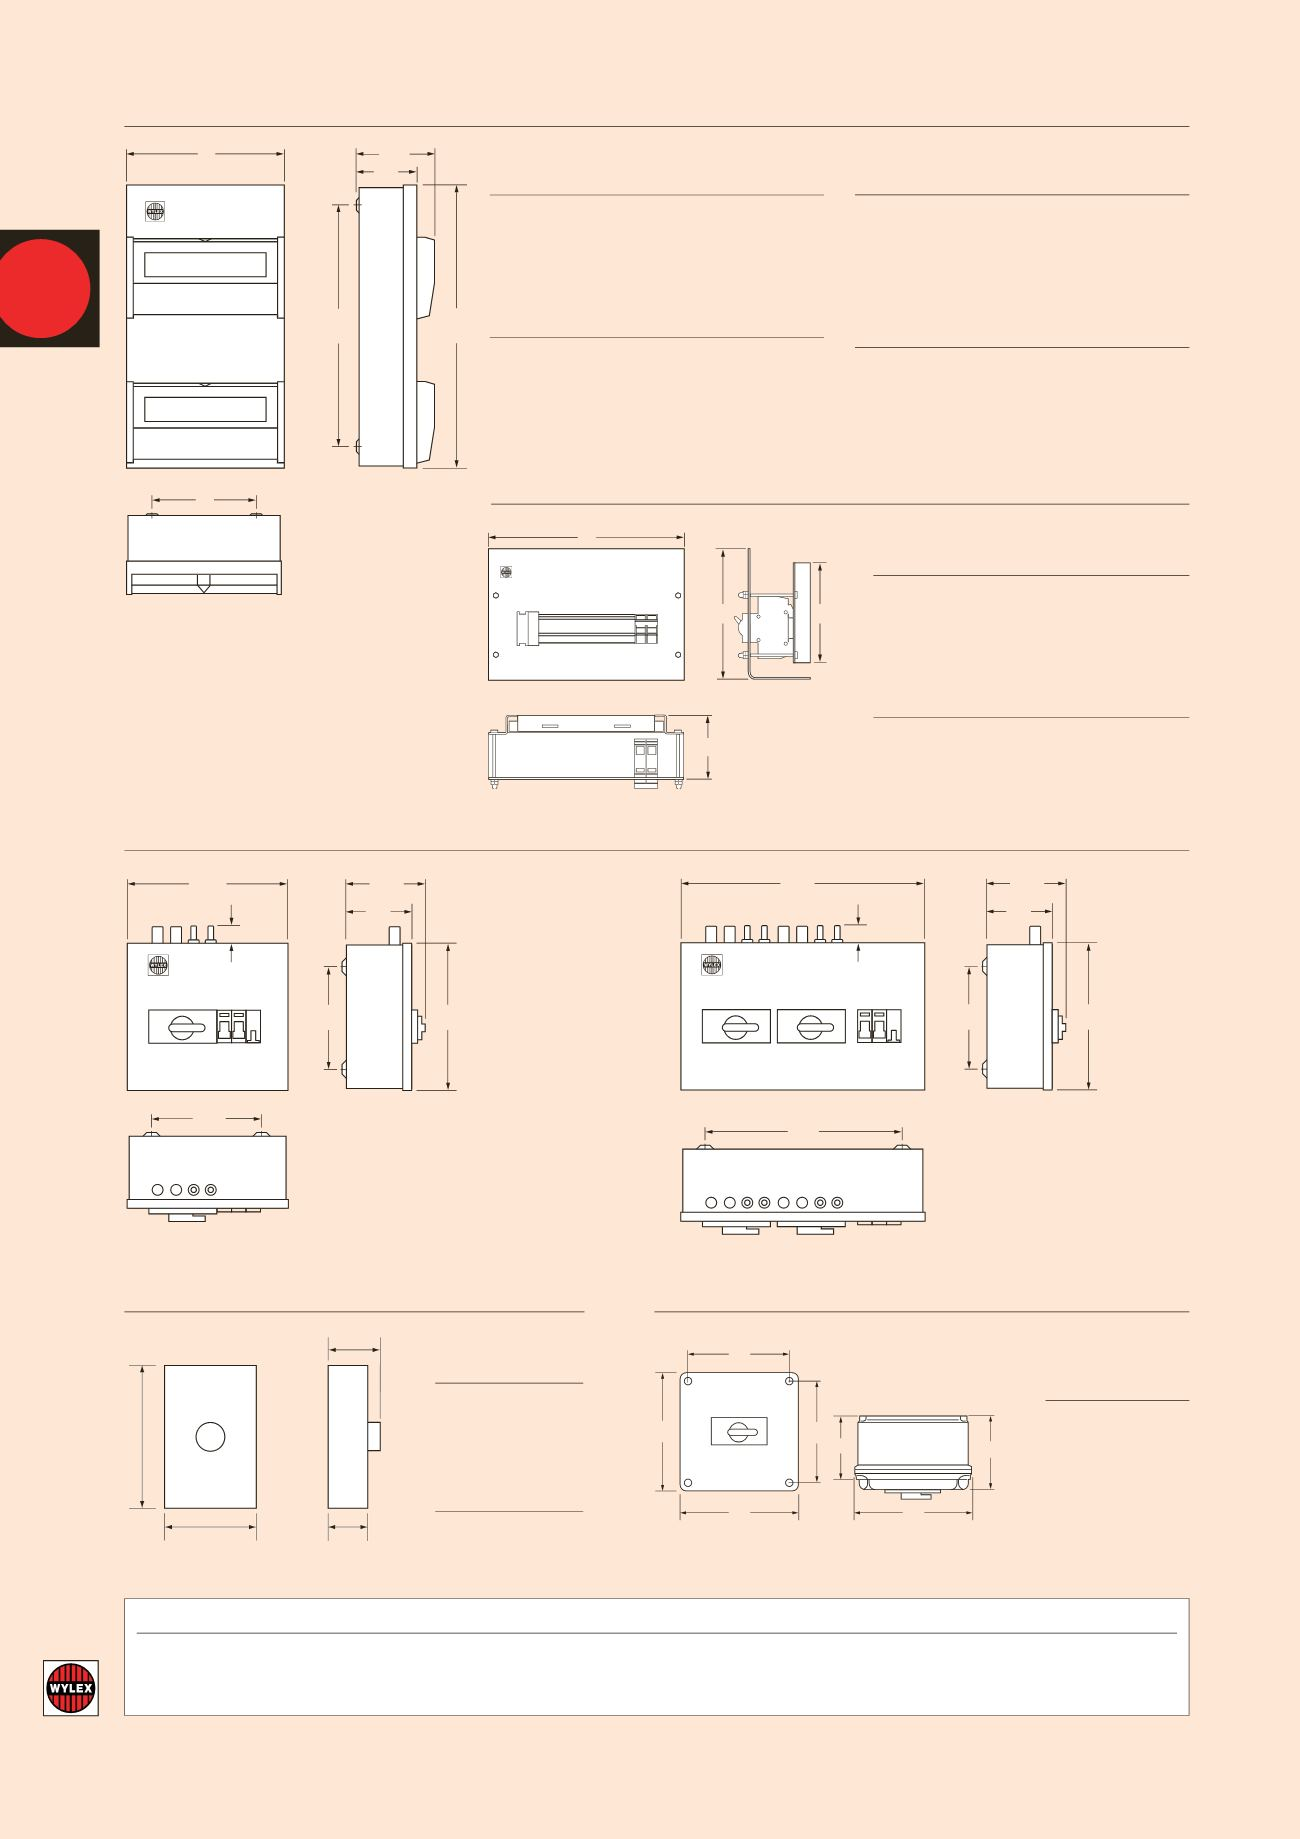 hight resolution of wylex consumer unit wiring diagram